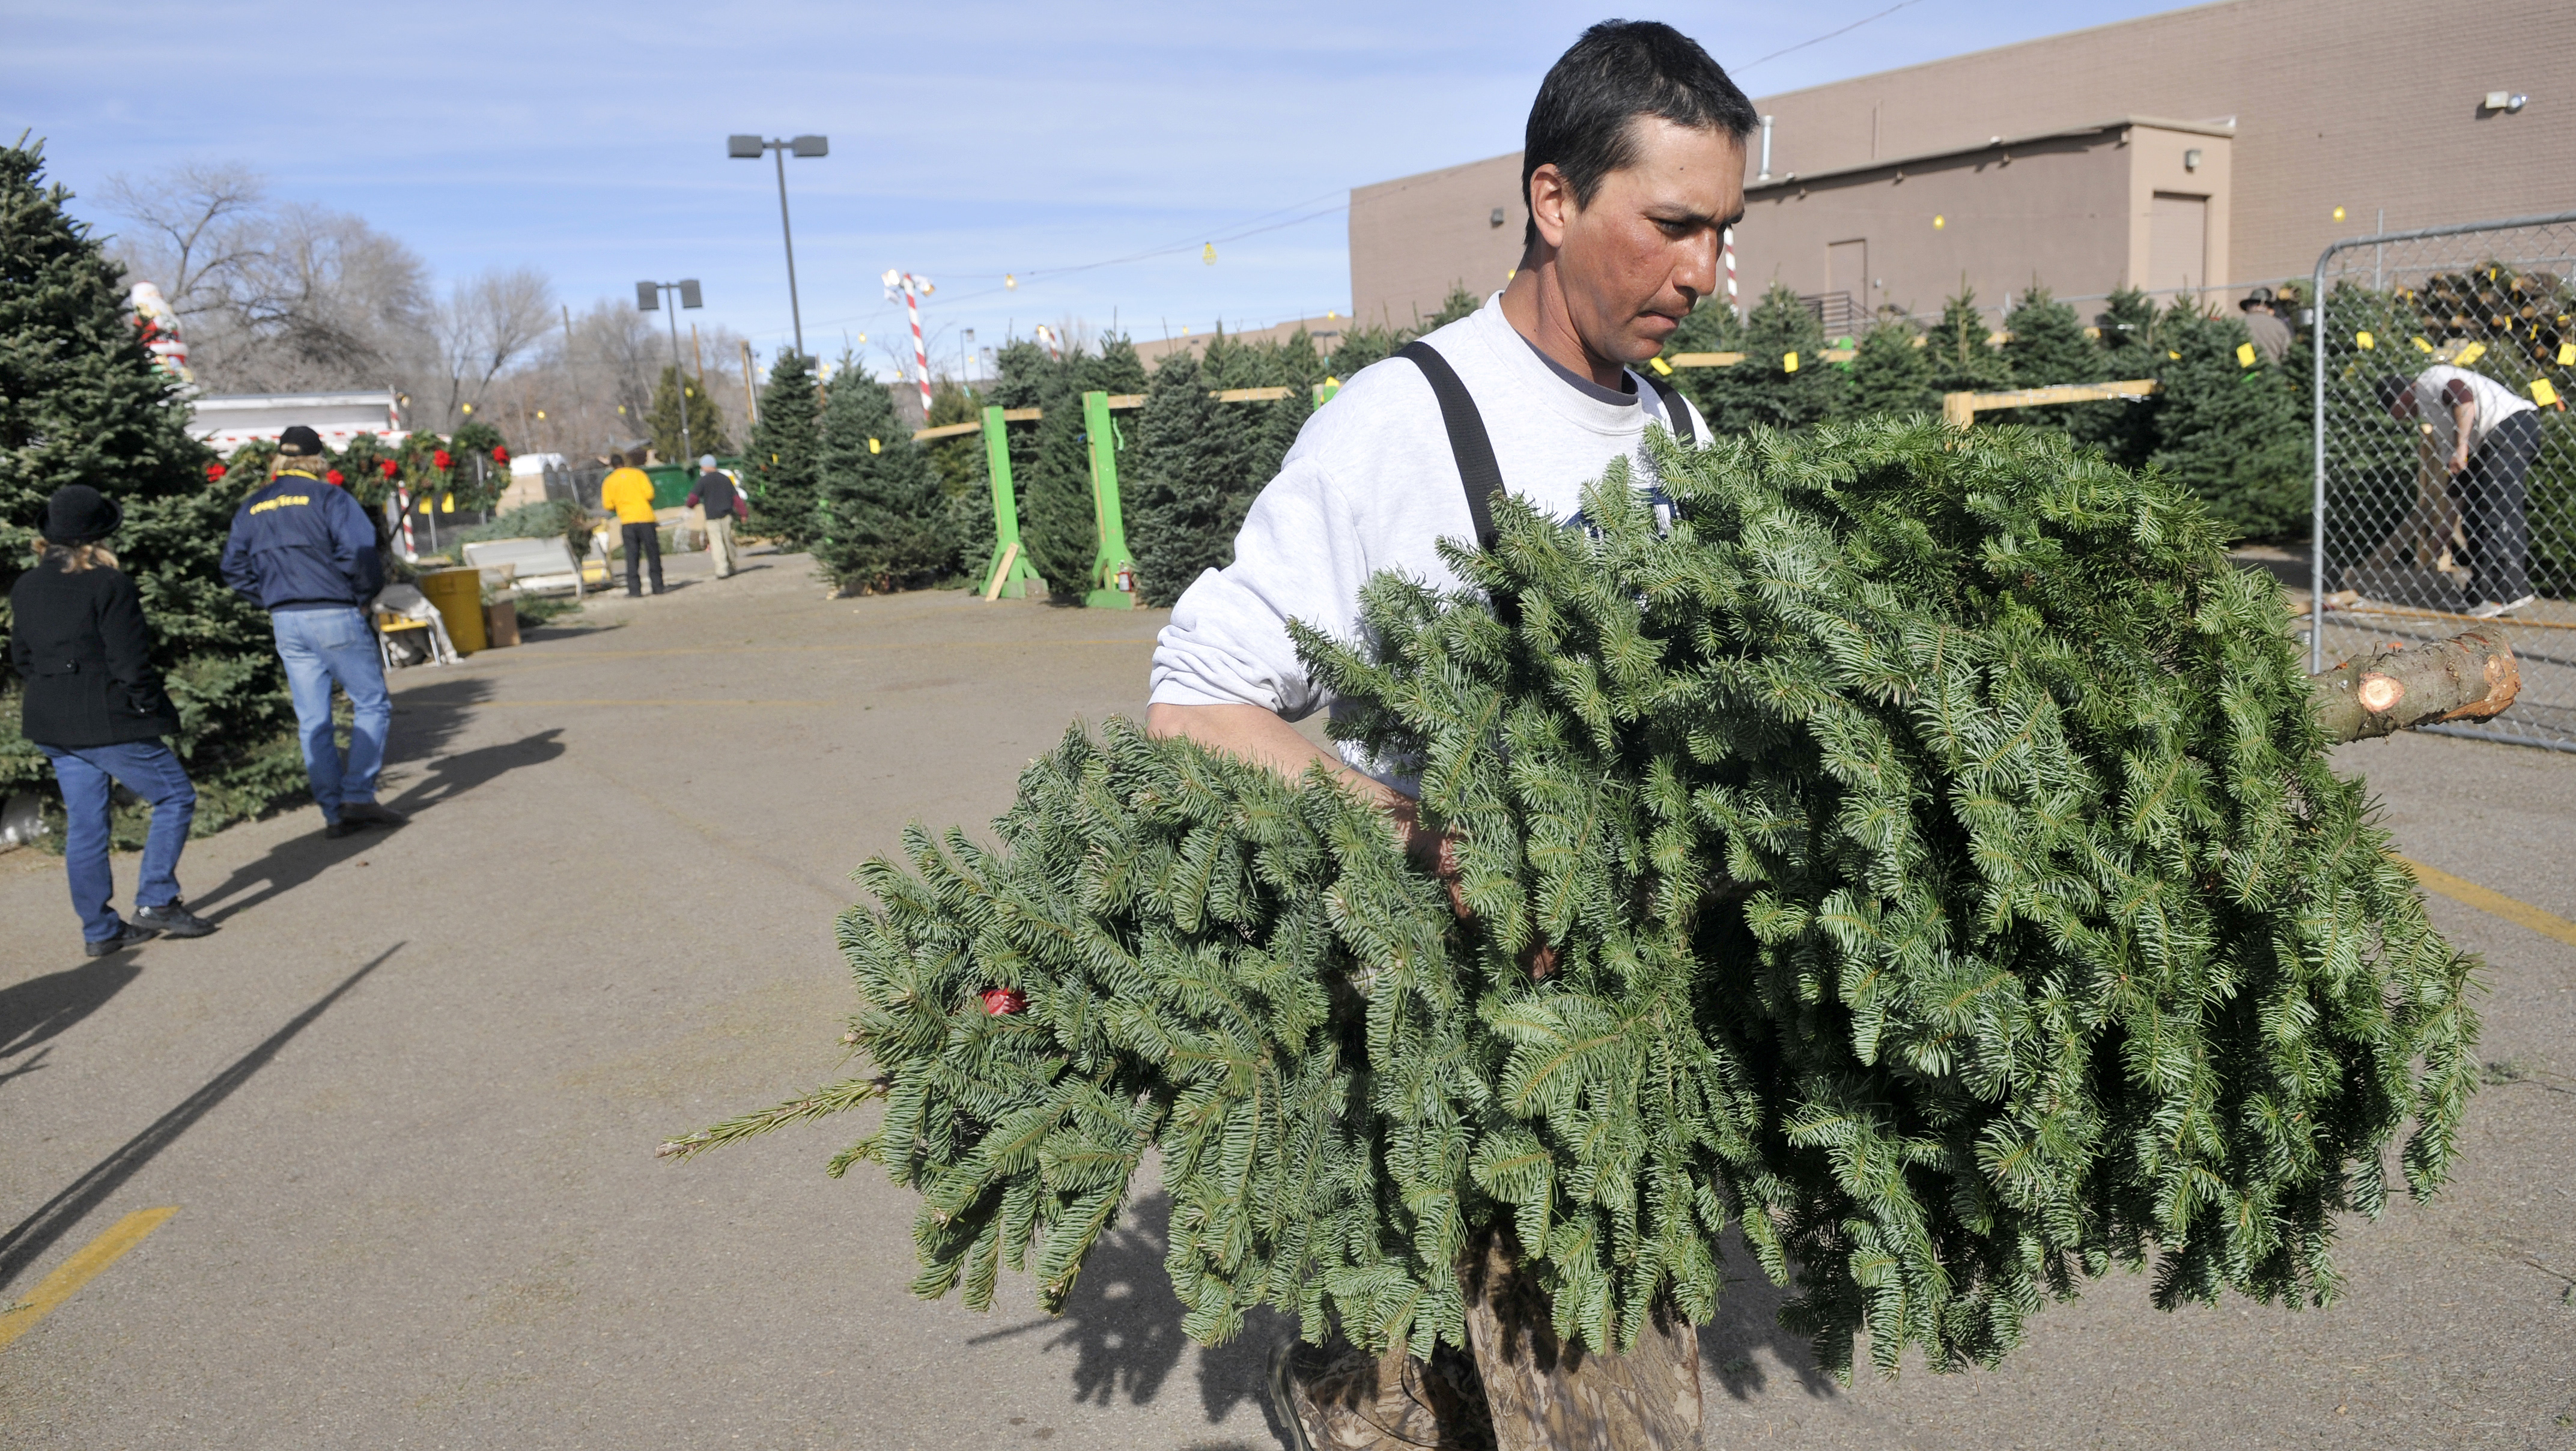 Delancey Street Christmas Trees.Christmas Tree Sales Help The Down And Out Help Themselves